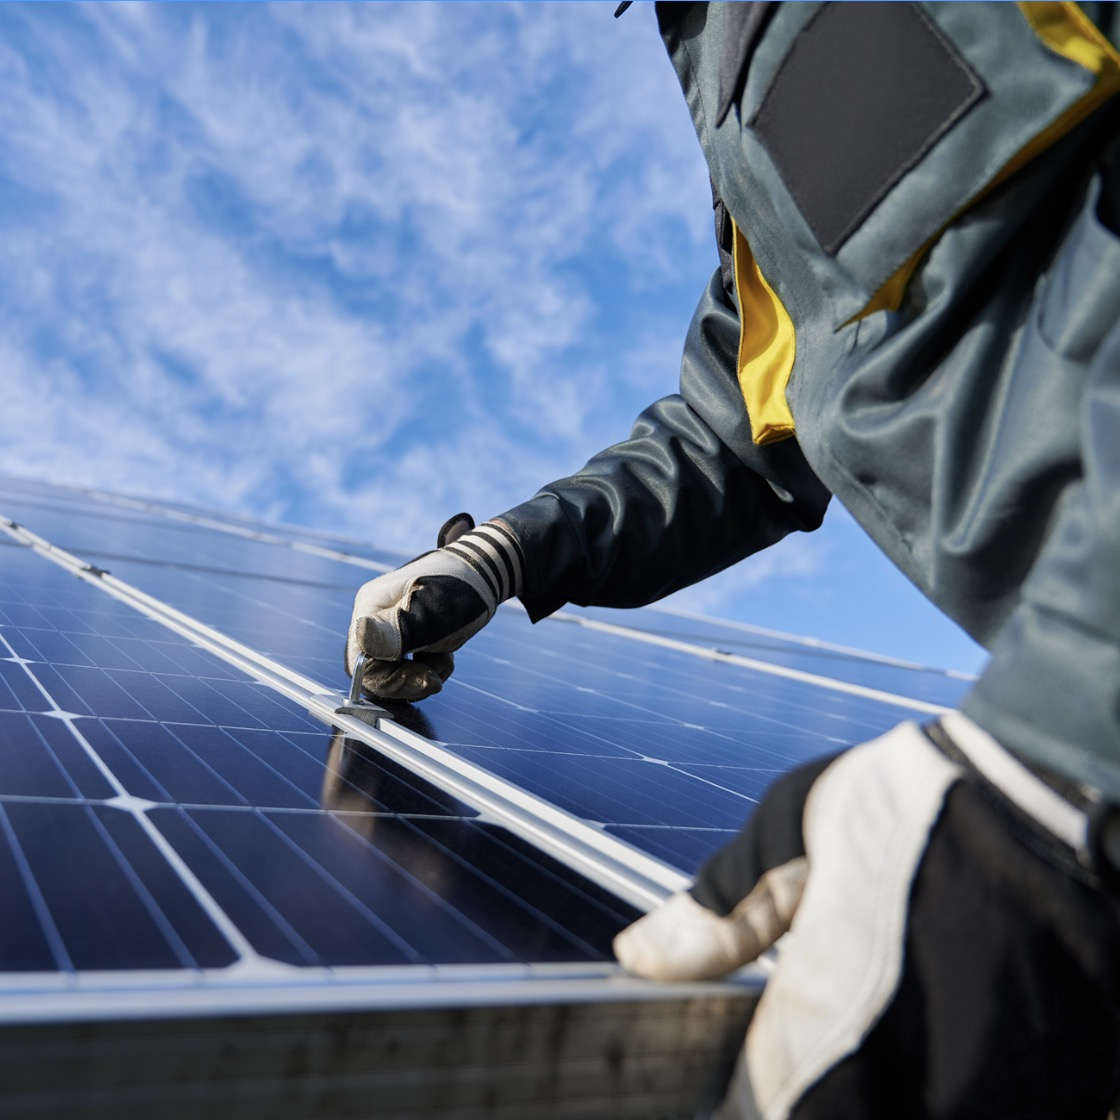 A worker wearing protective gloves connects two solar panels together in a large array.